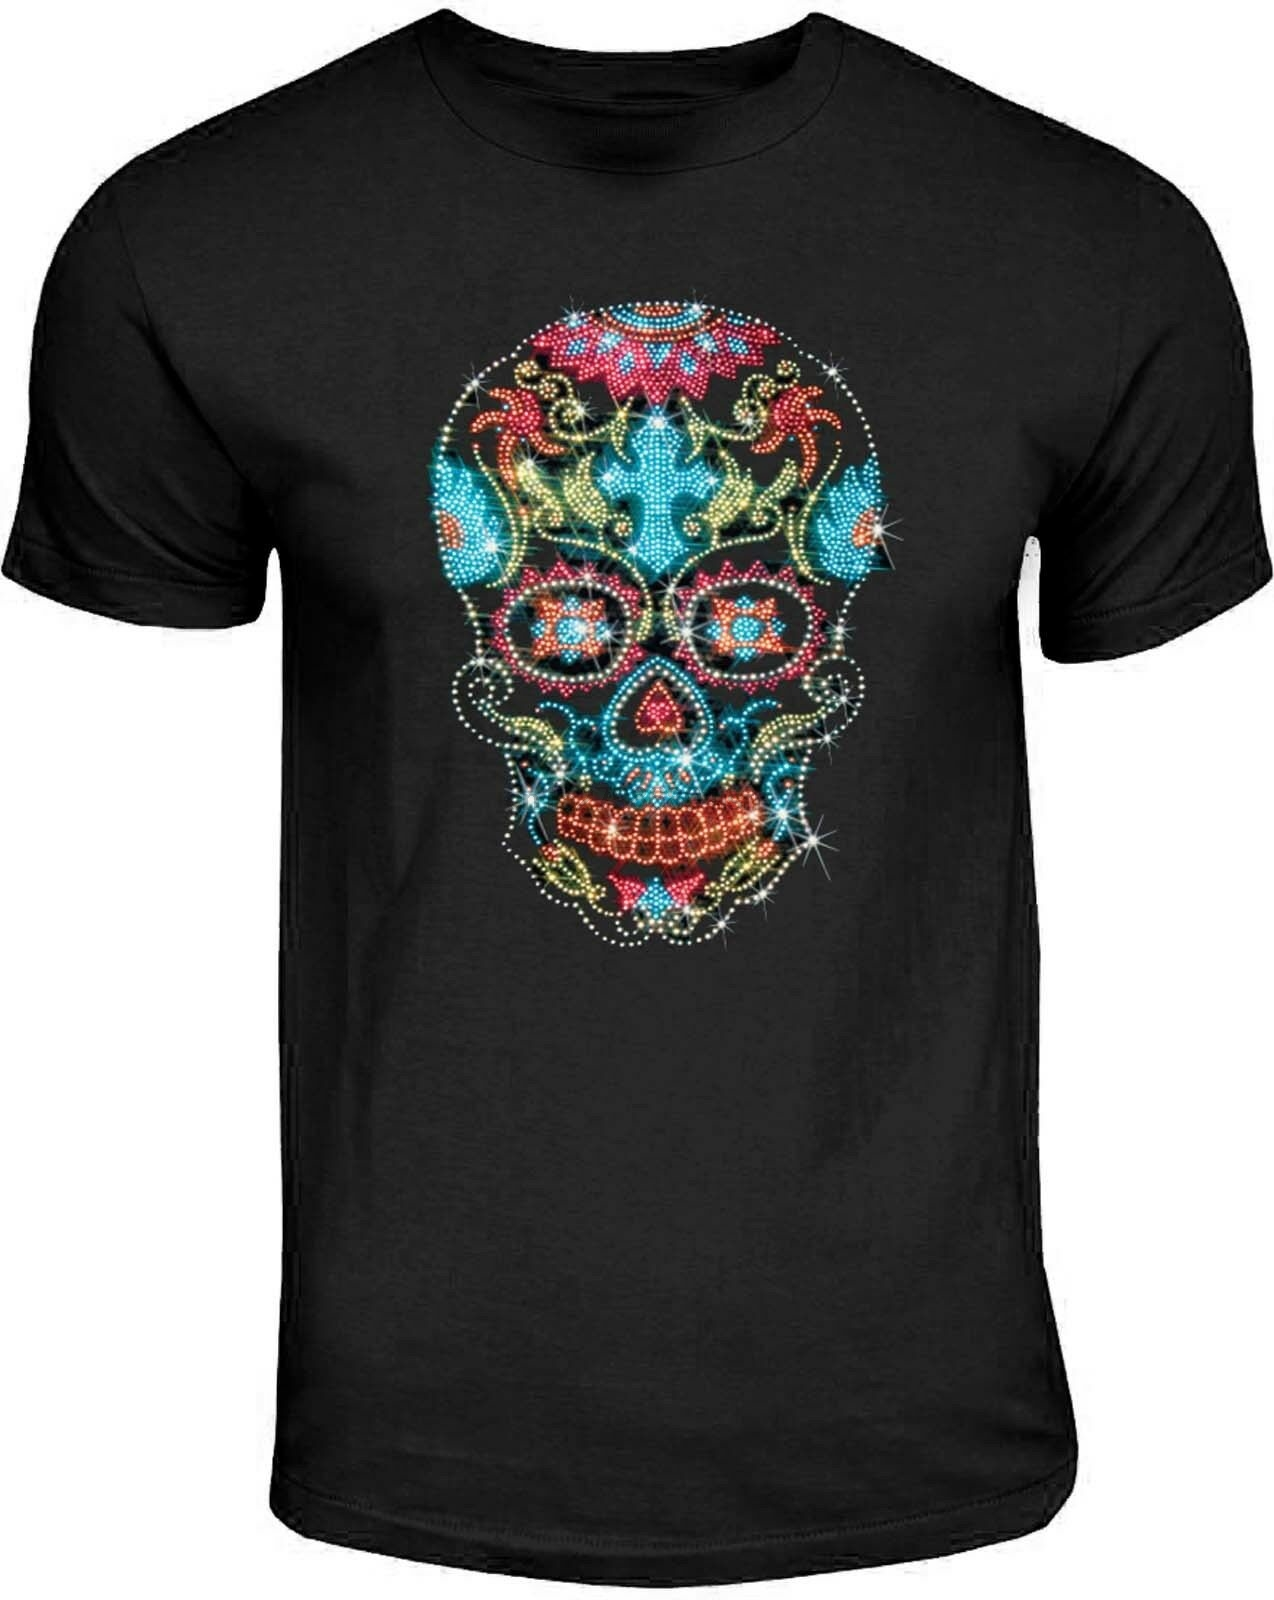 Ladies Rhinestone SKULL Design Fitted T SHIRT ANY SIZE 8 TO 18 Goth Punk Rock